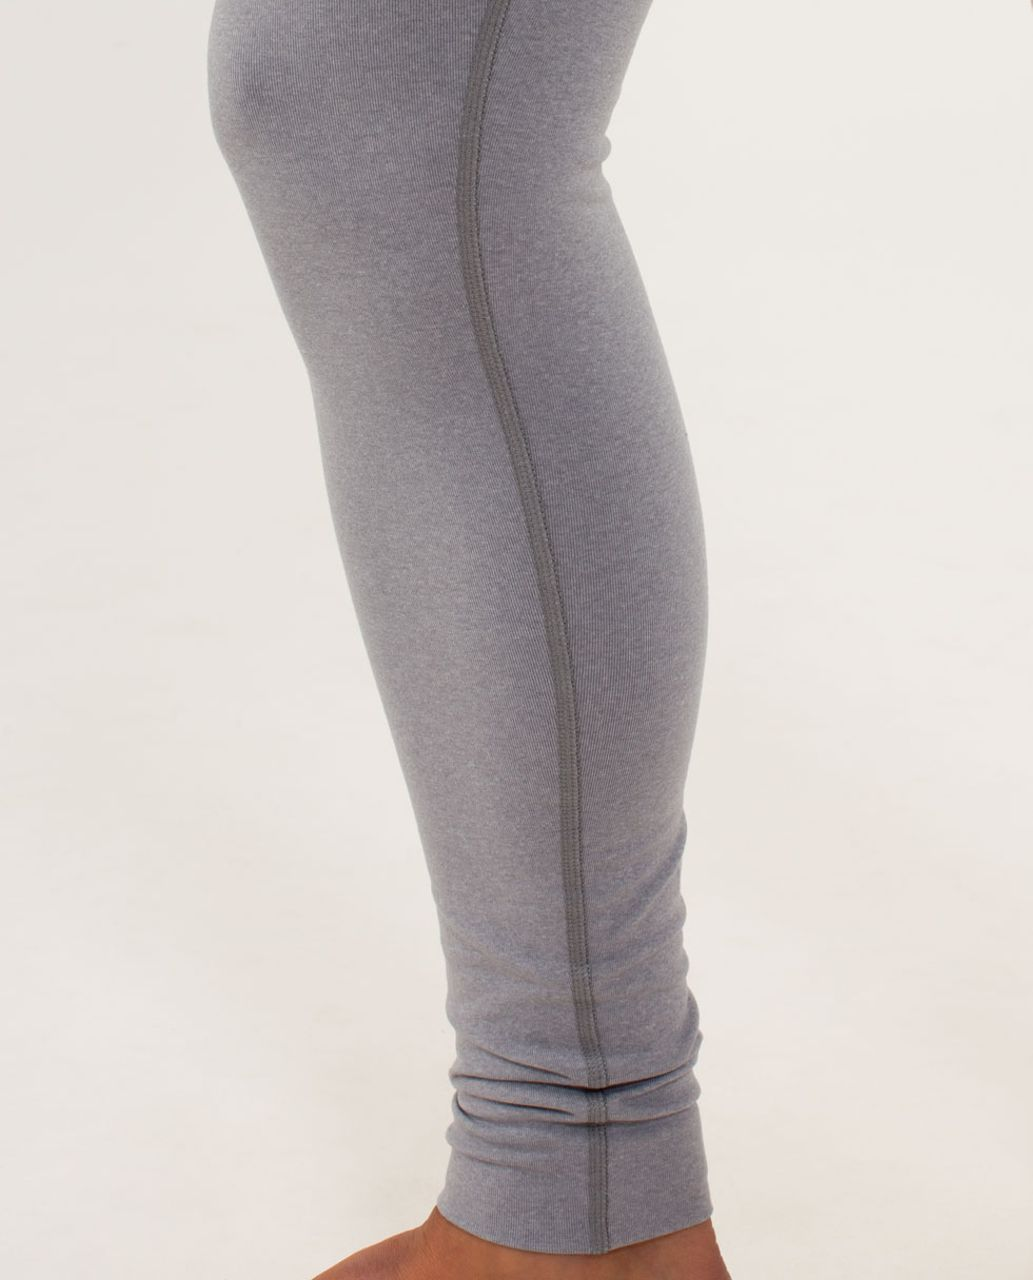 Lululemon Wunder Under Pant - Heathered Fossil / White